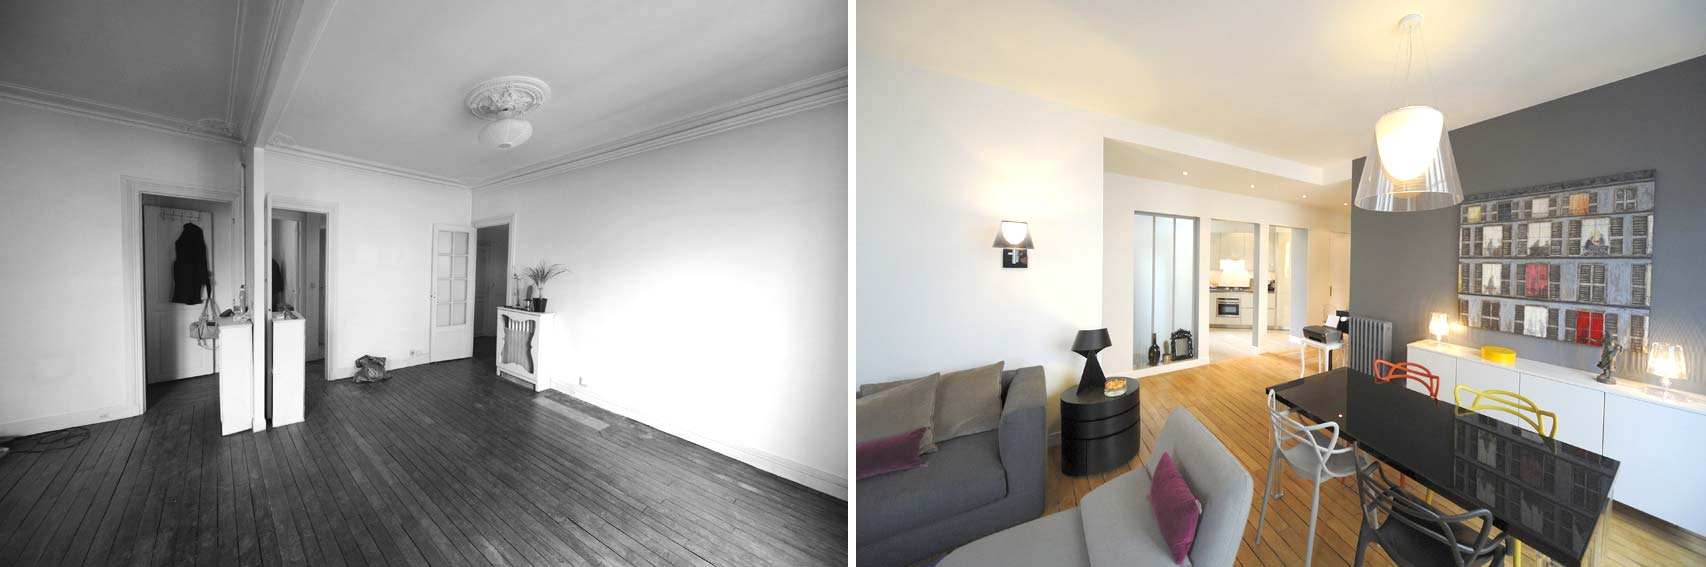 Avant apr s transformation d 39 un appartement de 65m2 du for Difference architecte d interieur et decorateur